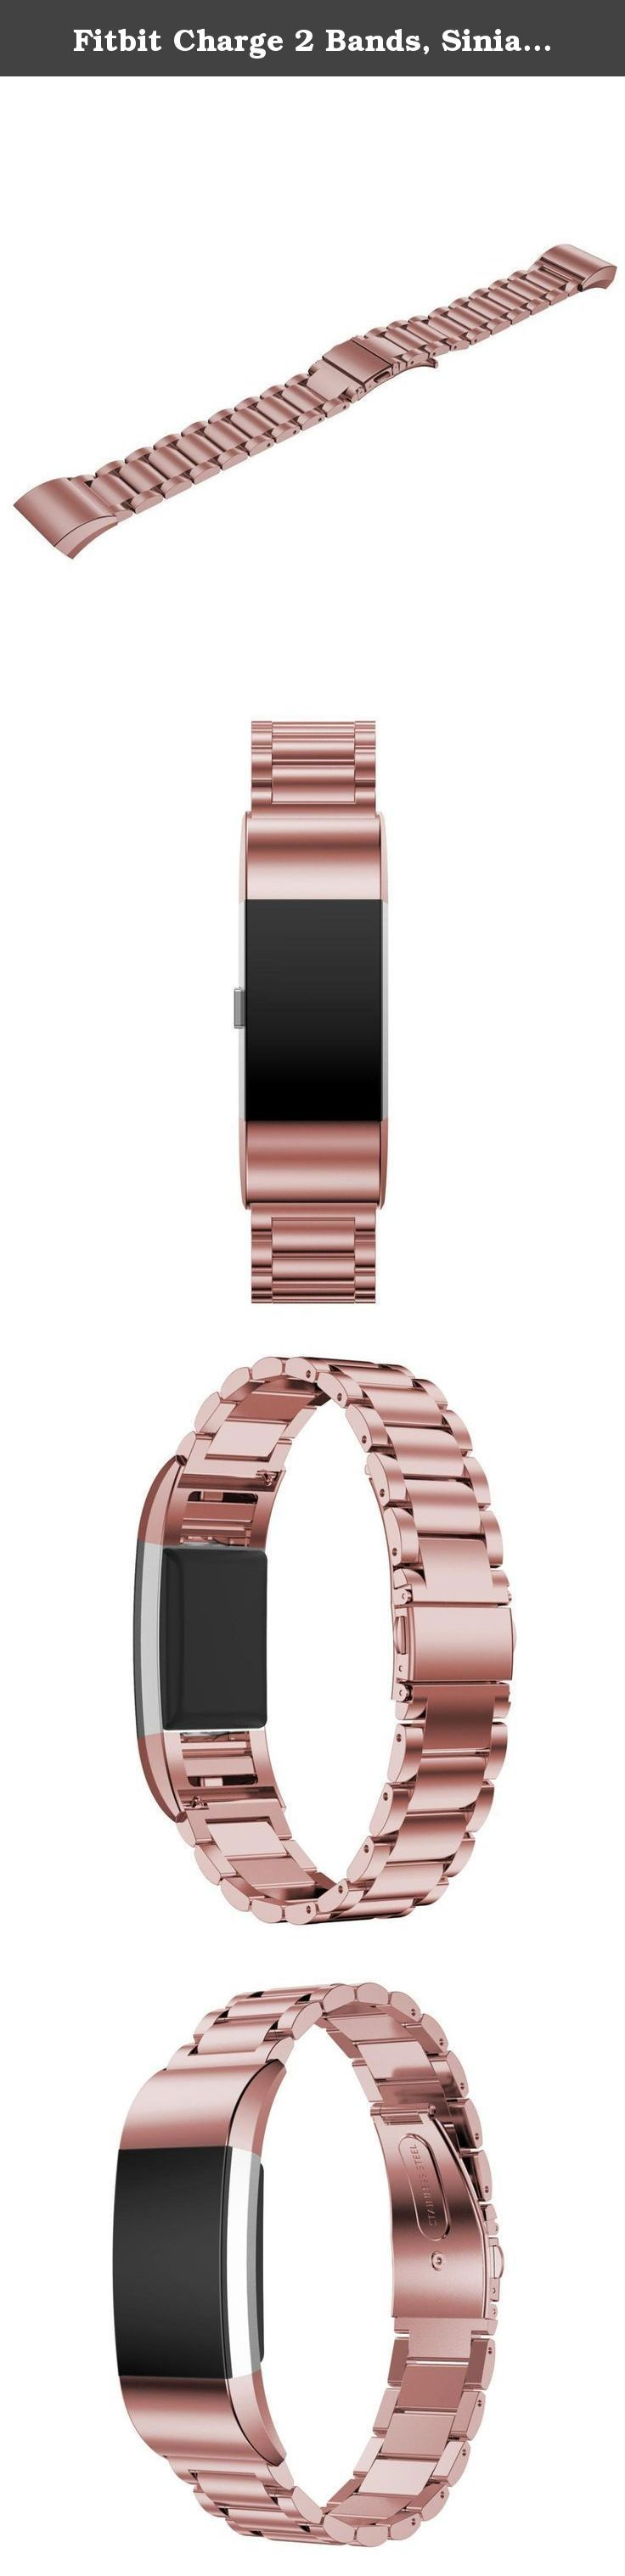 Fitbit Charge 2 Bands, Siniao Genuine Stainless Steel Bracelet Smart Watch Band Strap For Fitbit Charge 2 (Pink). ☛: Package Include: ☛: 1pc Genuine Stainless Steel Bracelet Smart Watch Band Strap For Fitbit Charge 2 (without retail package).